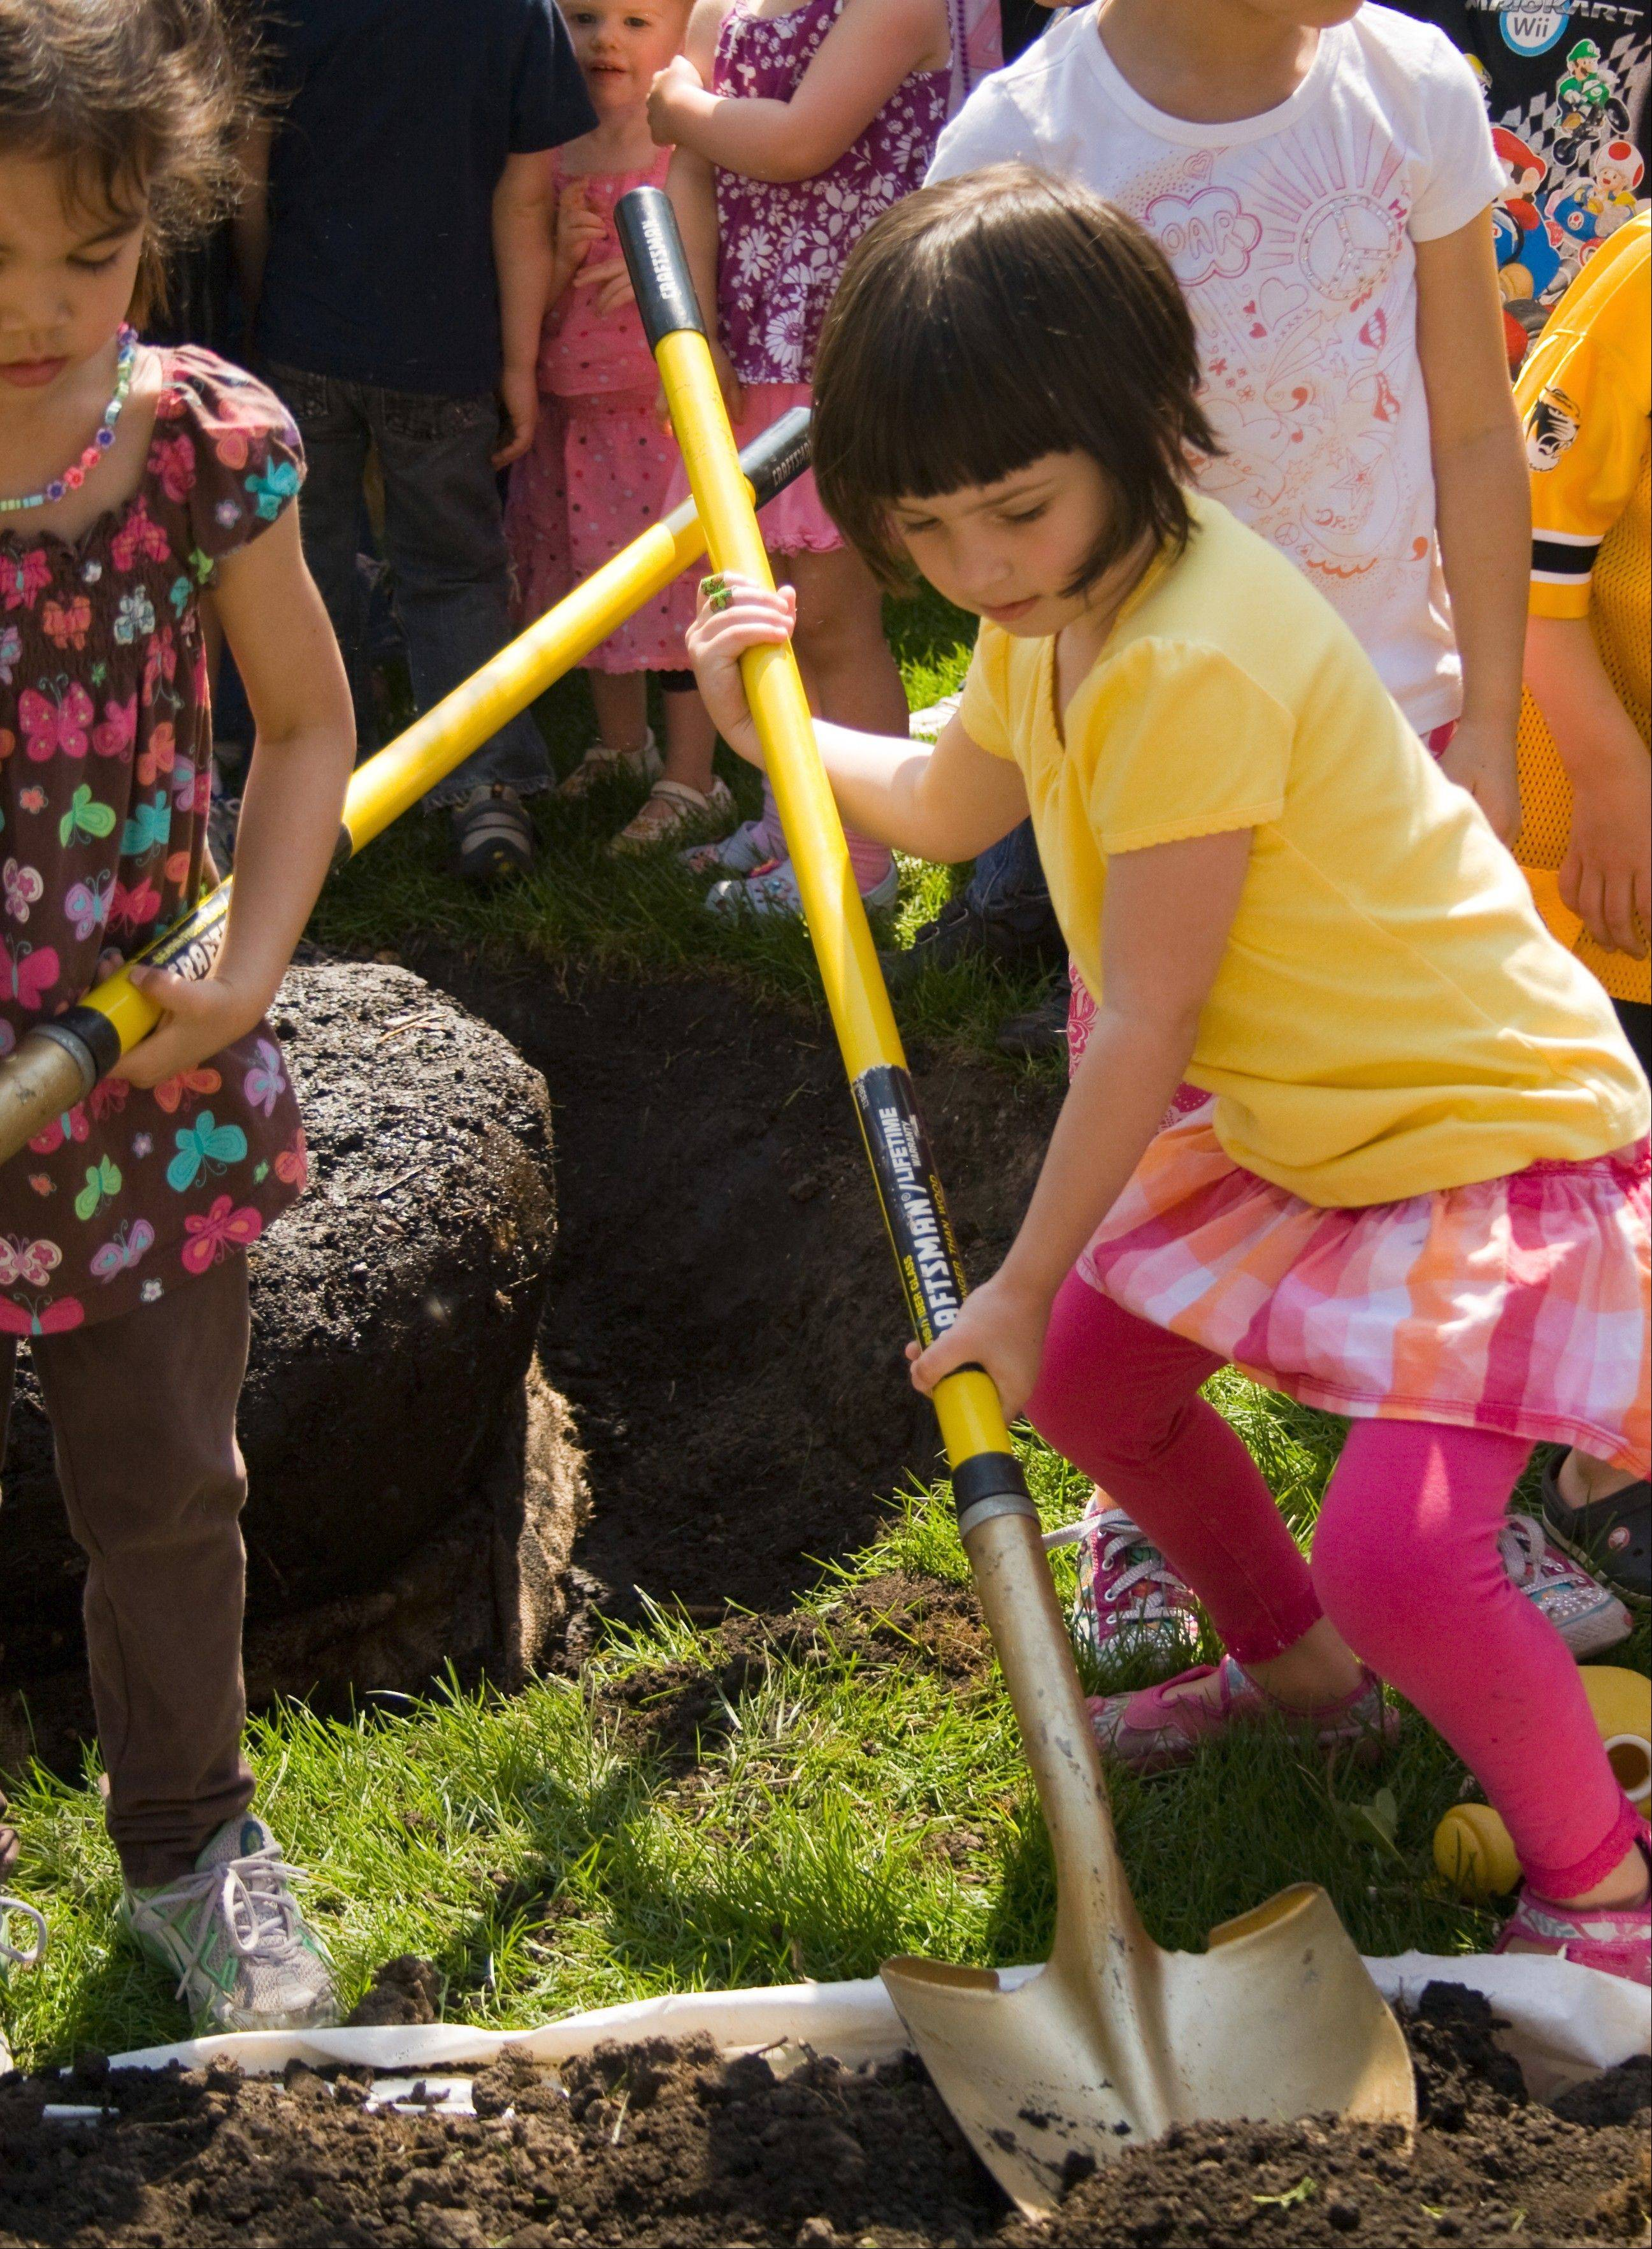 Planting a tree will be one of the activities children can participate in during the Earth Day celebration at the Morton Arboretum.